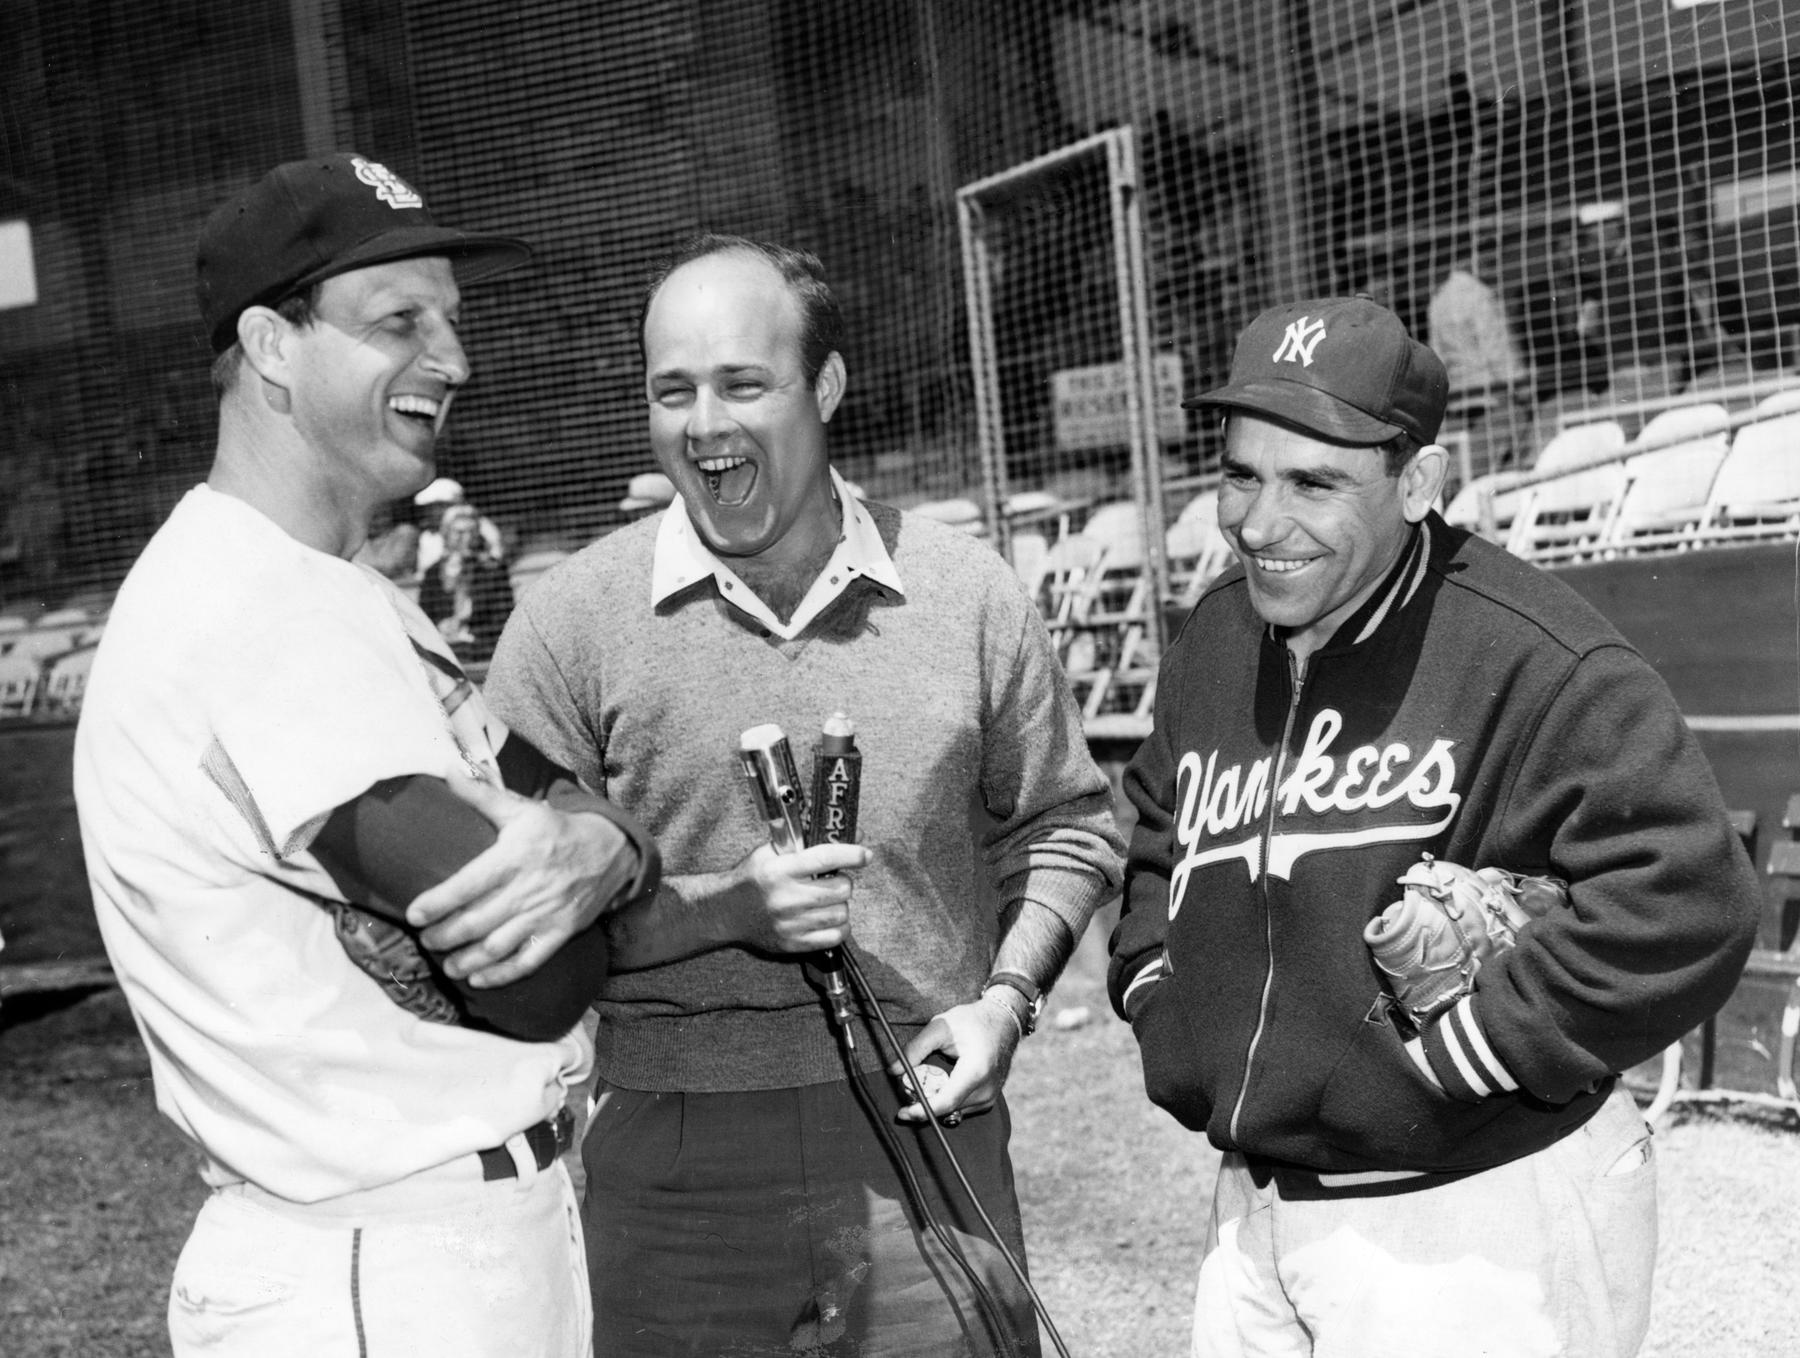 Former big league catcher Joe Garagiola, who became a broadcaster, talks with St. Louis Cardinals Stan Musial and New York Yankees Yogi Berra during spring training in Florida, 1960. BL-2081.68WTI (National Baseball Hall of Fame Library)